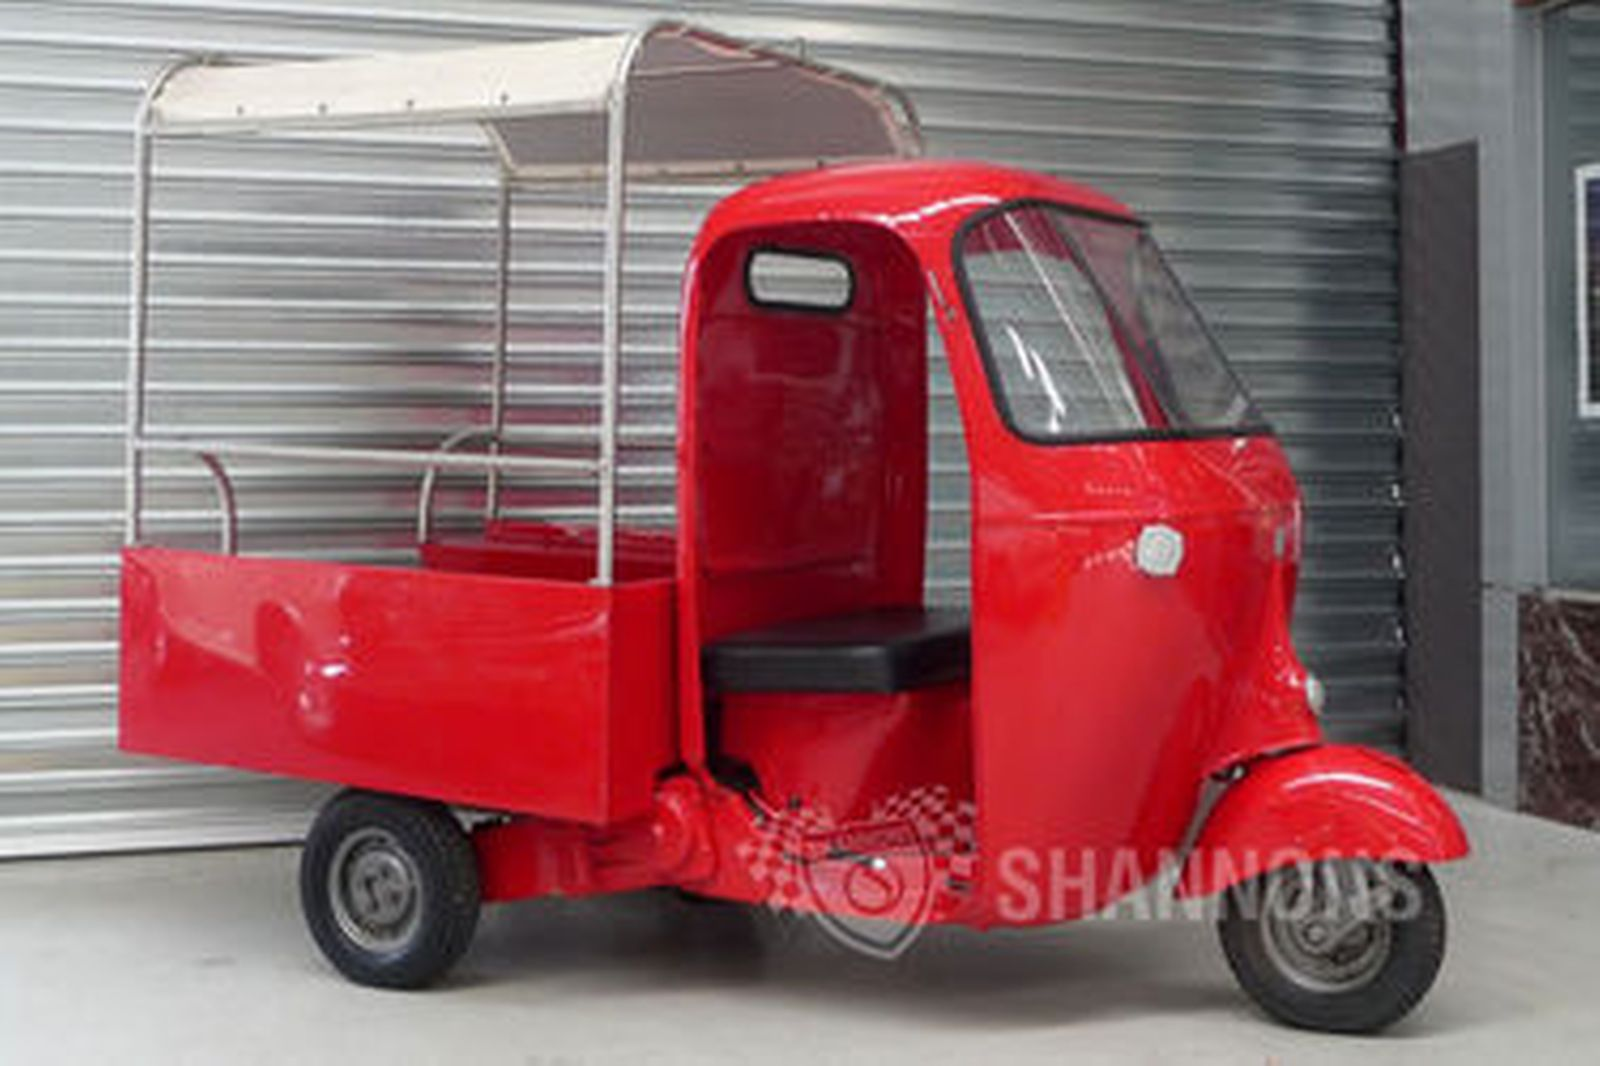 sold: vespa ape 150cc 3-wheeler pick up (ex post bike) auctions